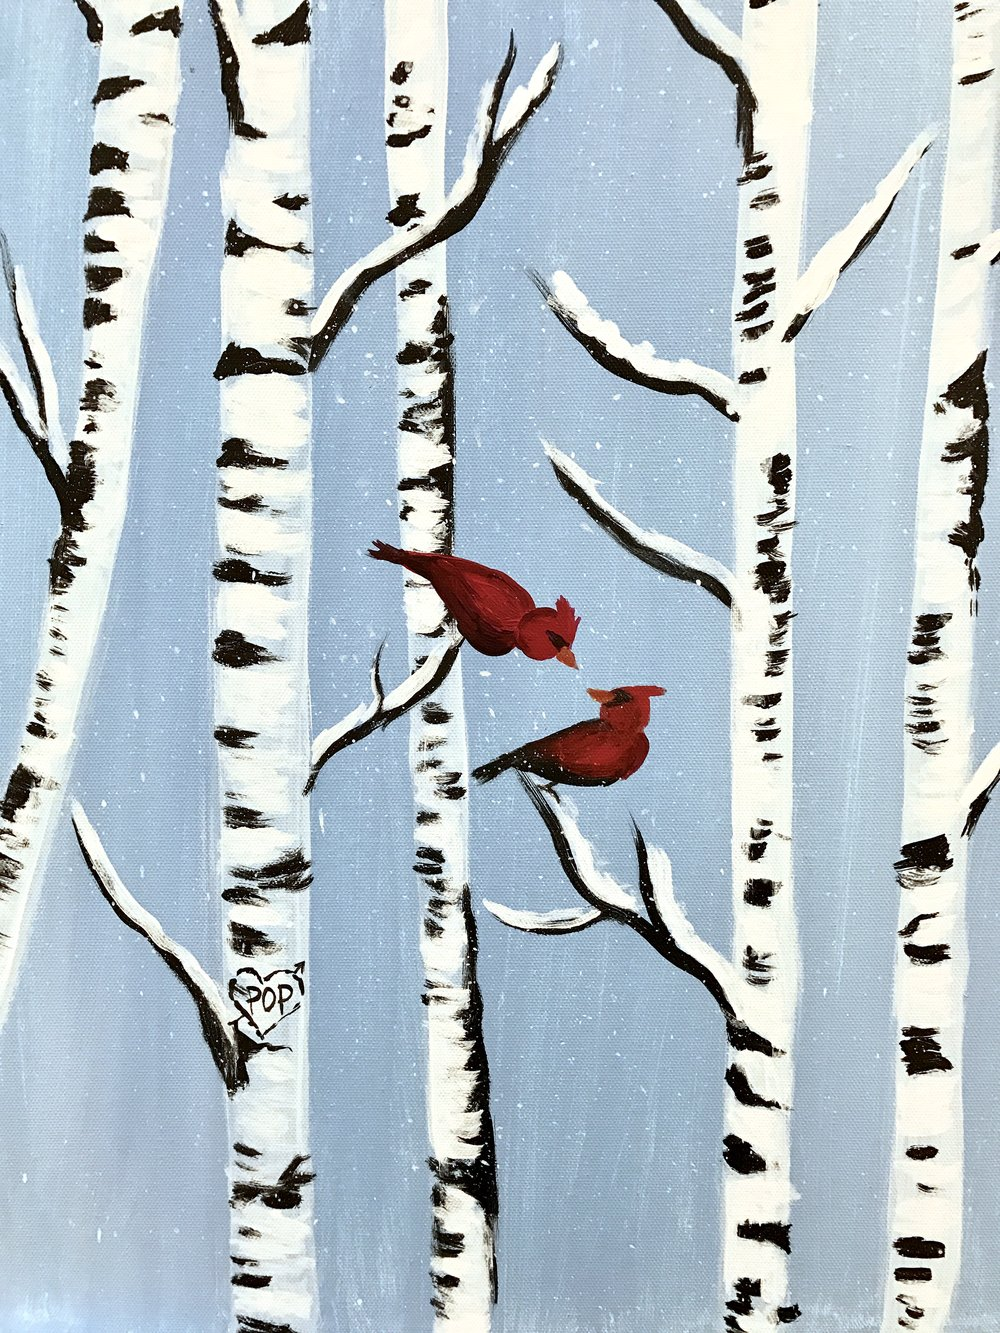 SnowyBirchTrees with 2 cardinals.jpg